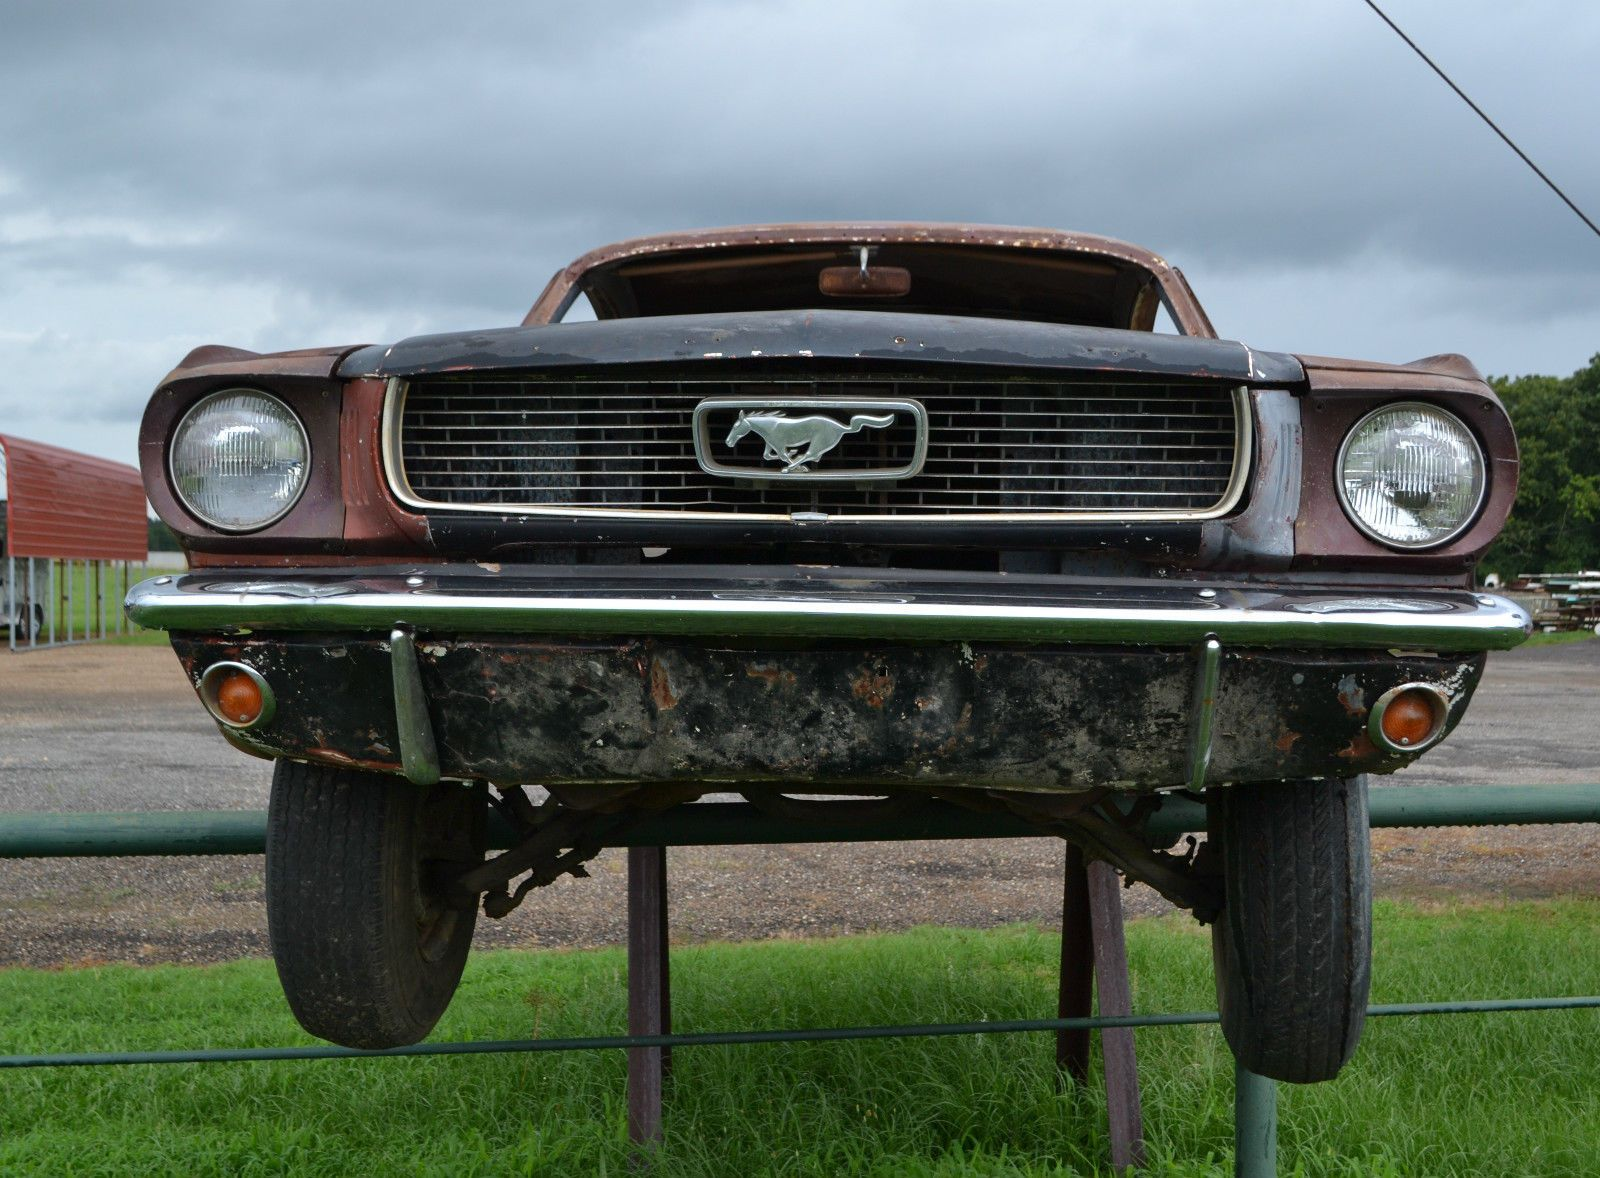 65 mustang for sale ontario - 1965 Ford Mustang Fastback Left Right Side Quarter Panels Parts Or Restore Ebay